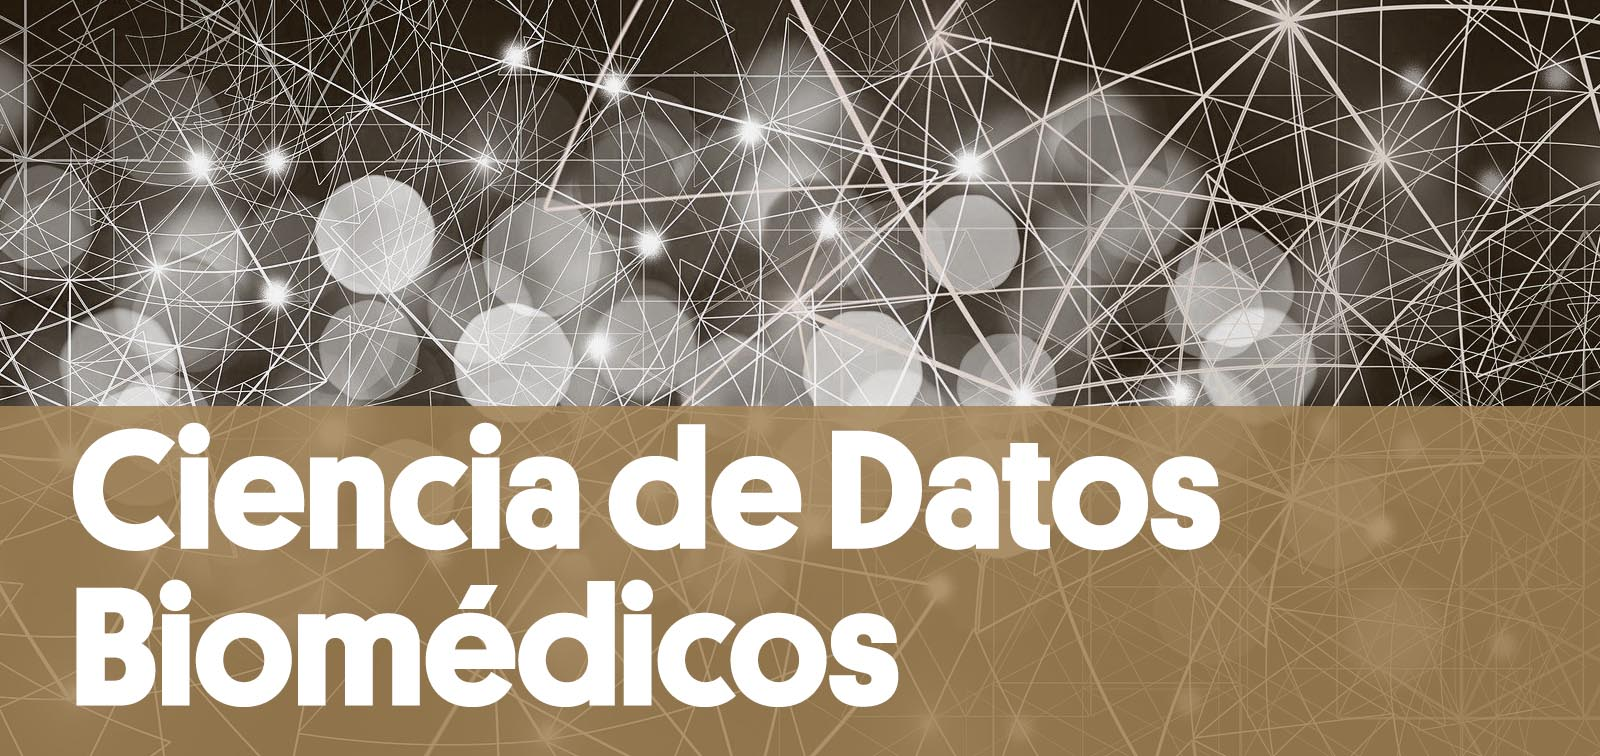 Ciencia de datos y Big Data en ISGlobal